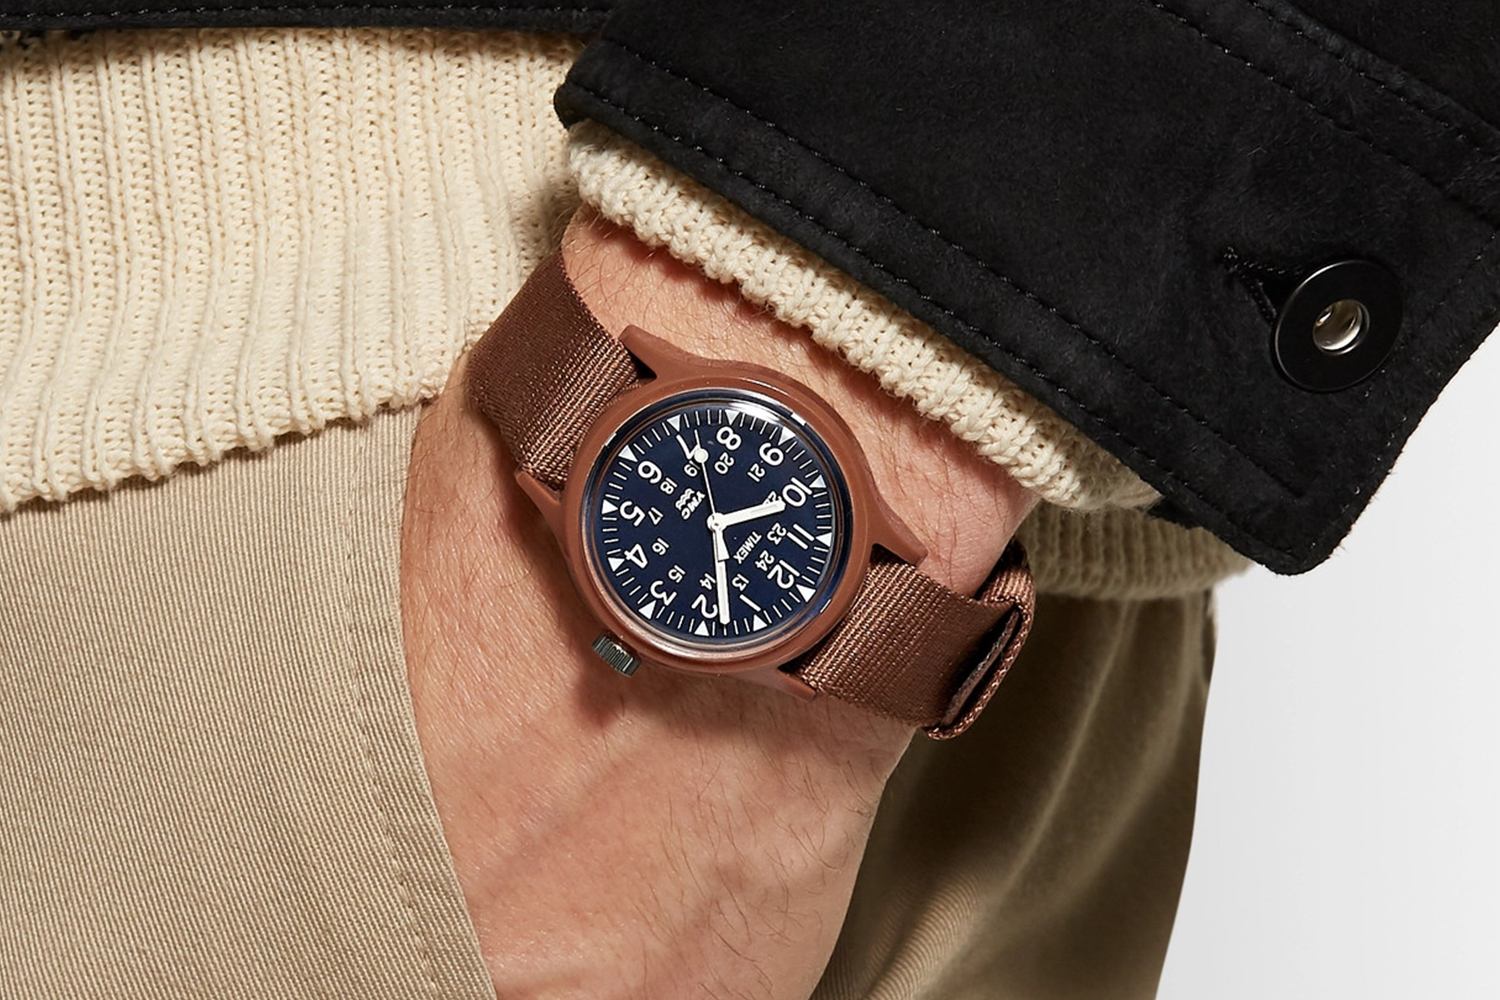 Timex and YMC Limited-Edition Military-Inspired MK1 Watch